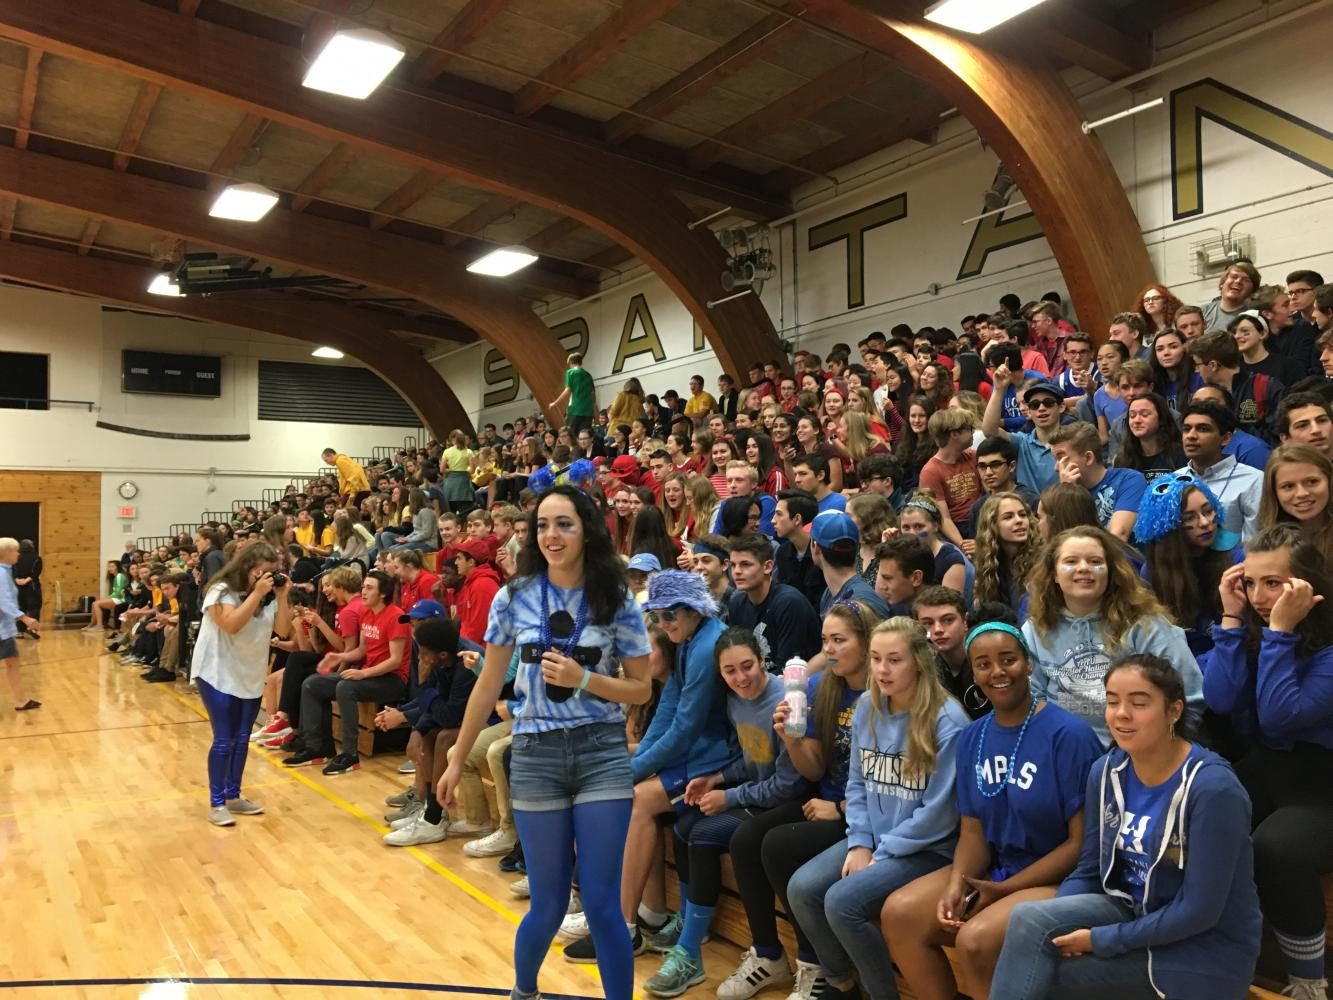 Grades took their class colors seriously and a bright rainbow could be seen across the gymnasium.